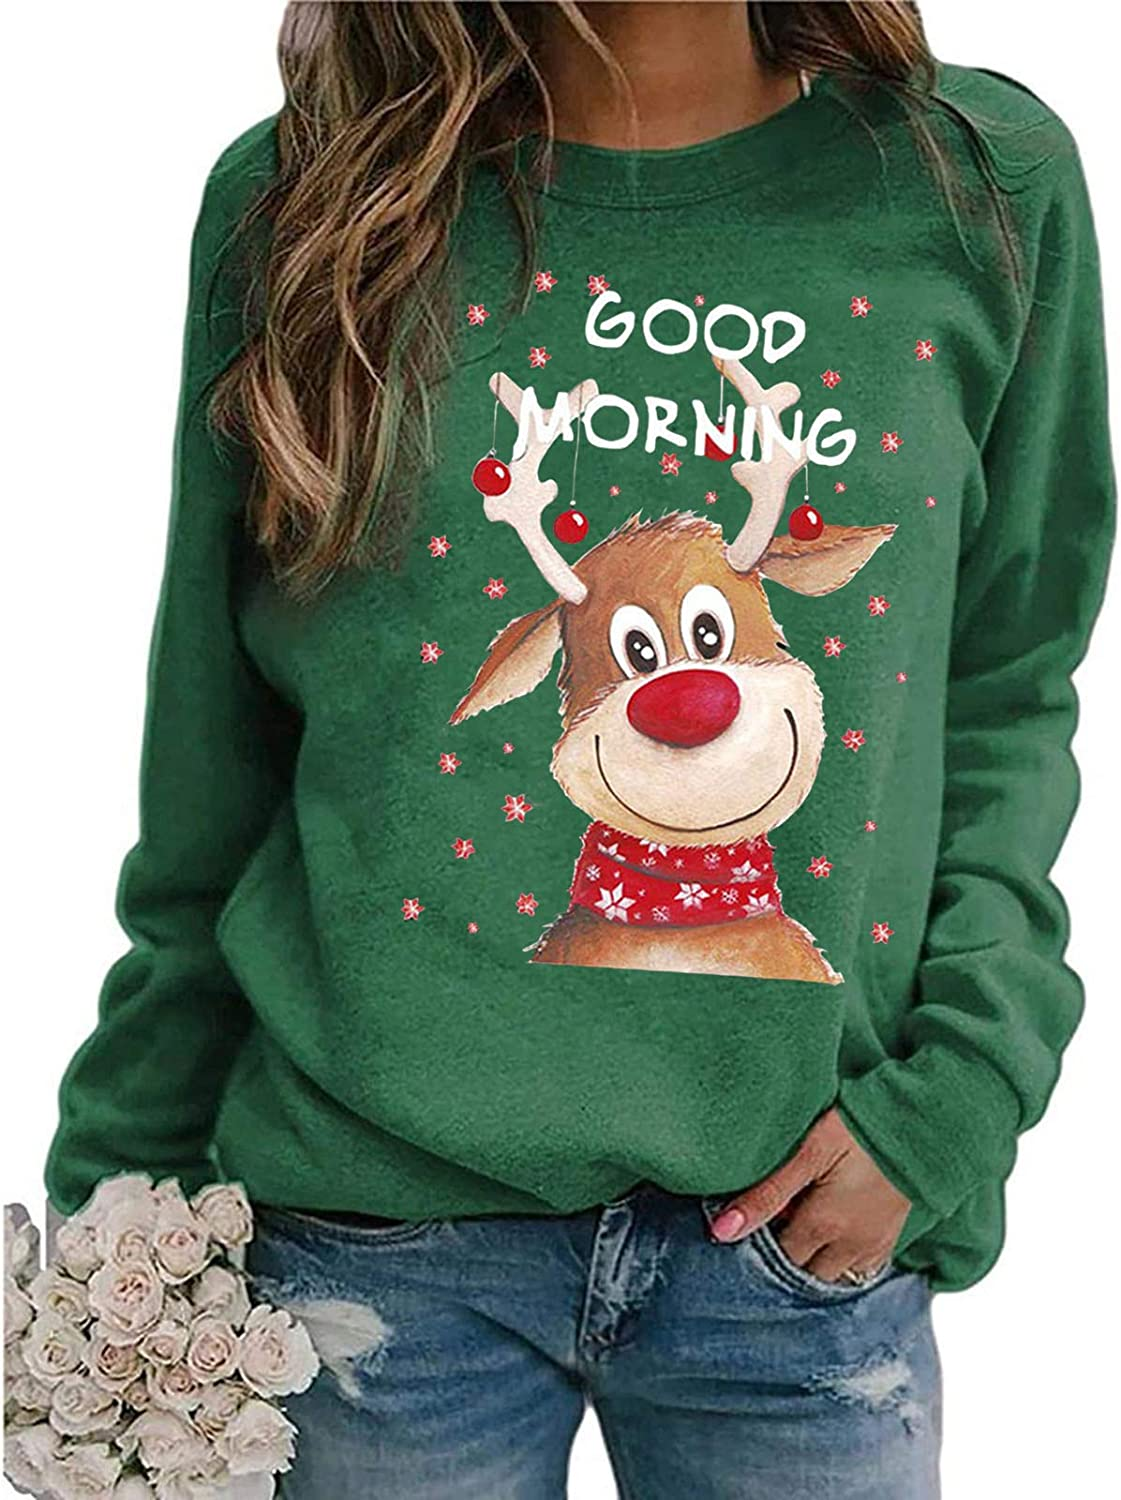 Womens Long Sleeve Tops,Cute Christmas Printed Lovely Graphic Pullover Crewneck Sweatshirt Shirts